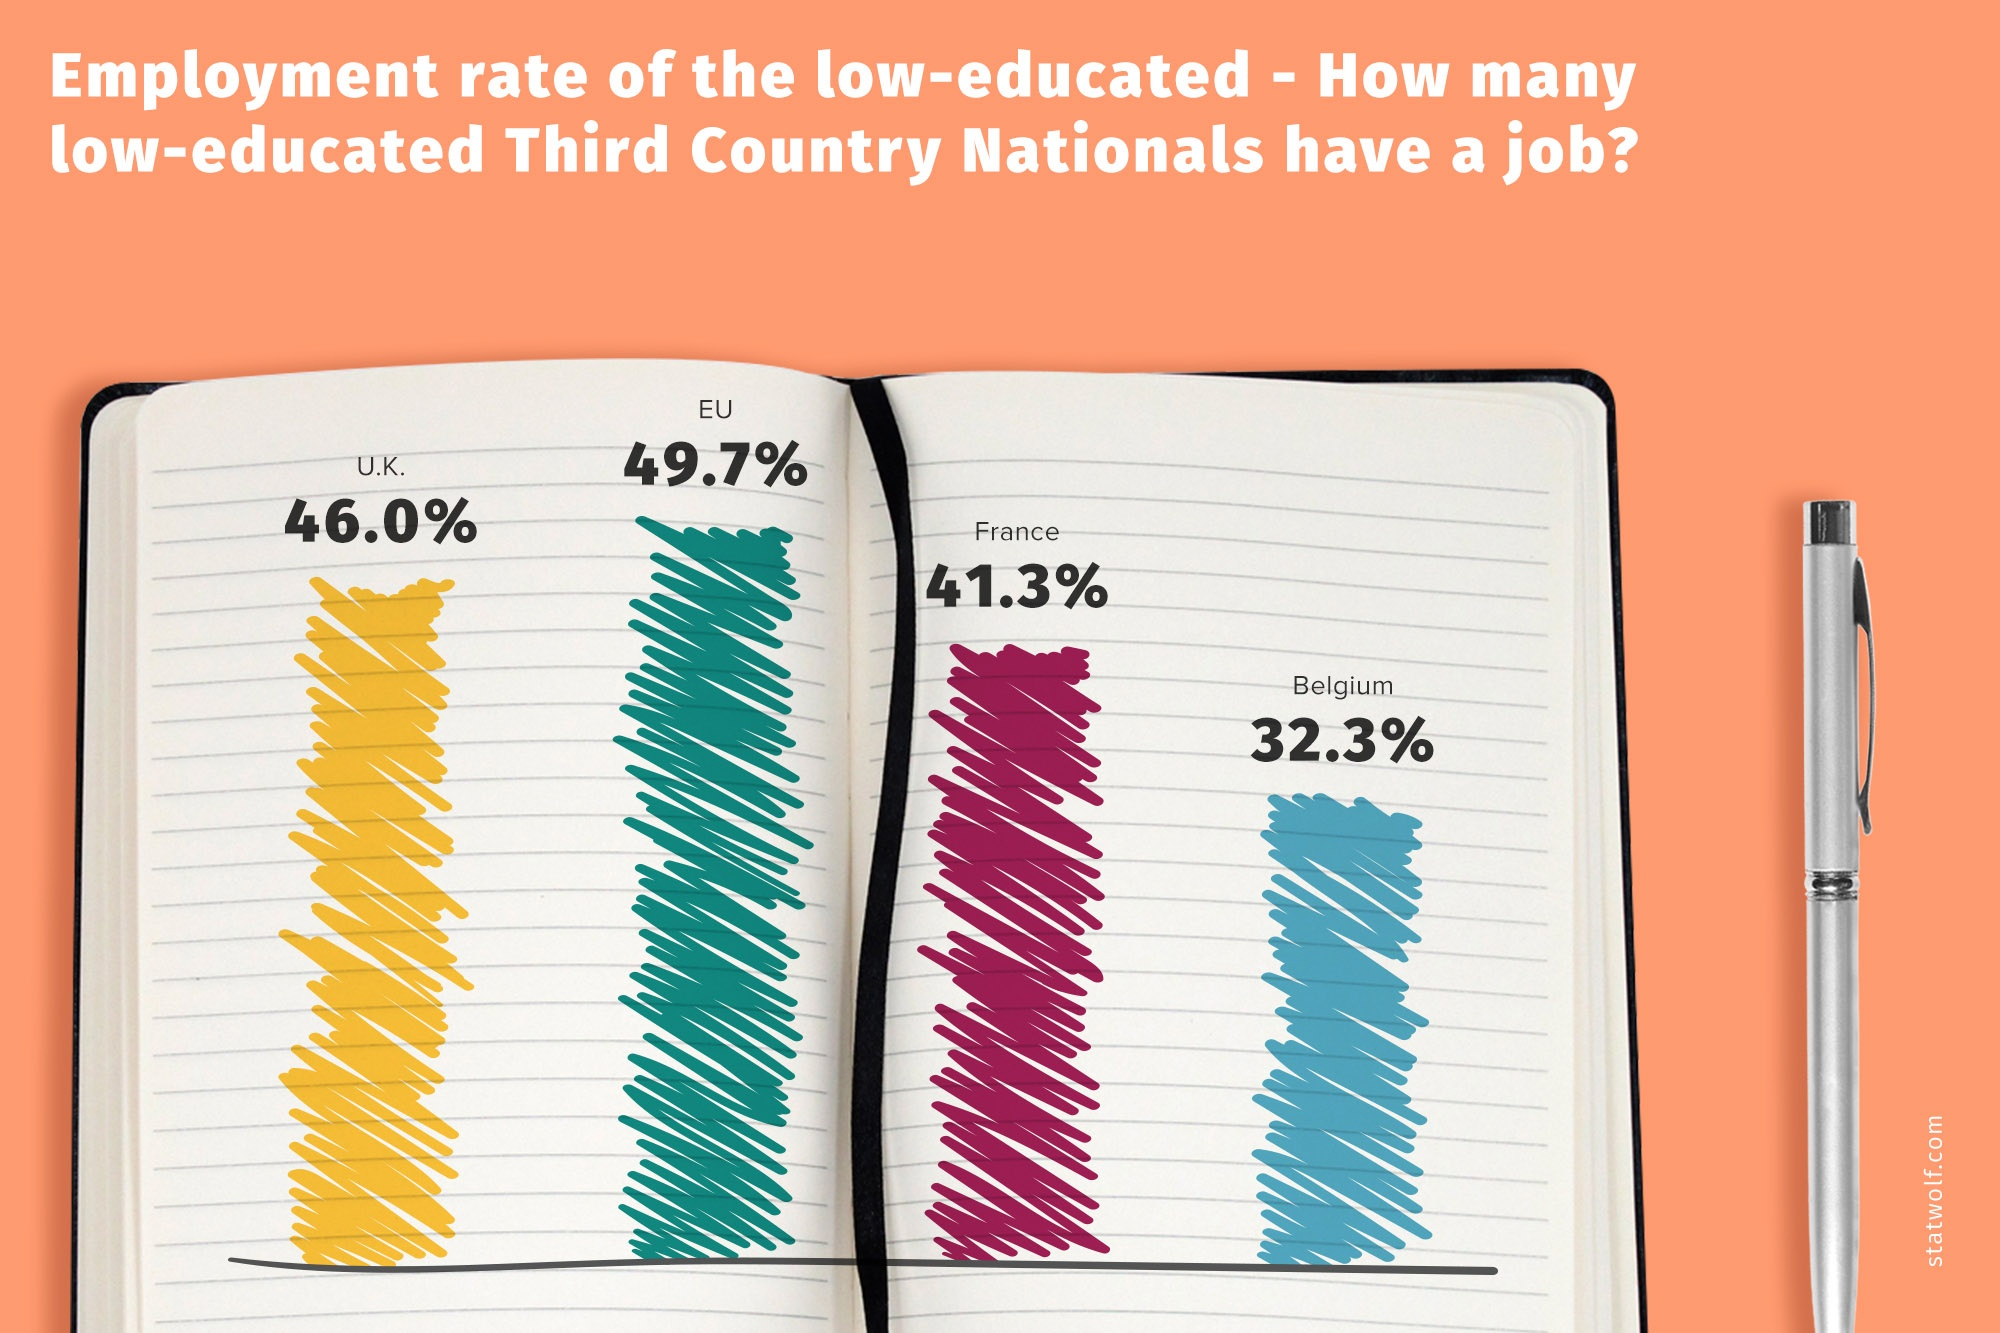 Employment Rate OF the Low-educated - How many Low-educated Third Country Nationals Have a Job